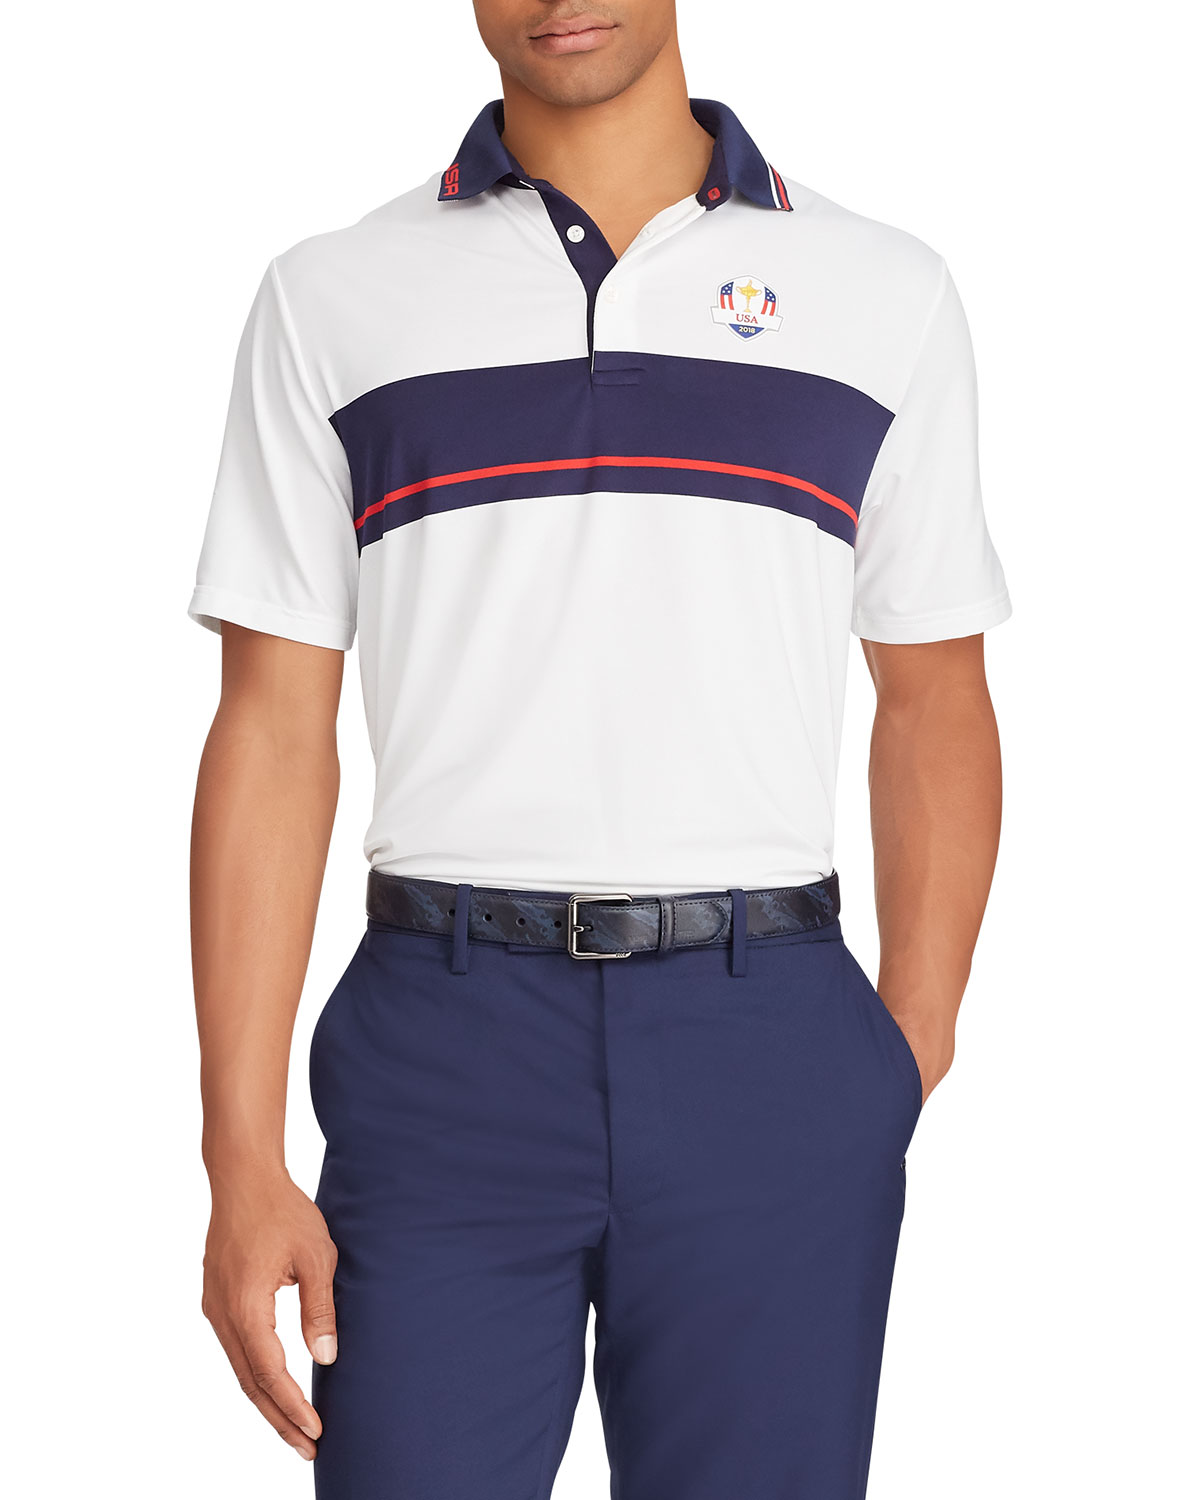 Ralph Lauren Mens Tuesday Usa Ryder Cup French Knit Golf Polo